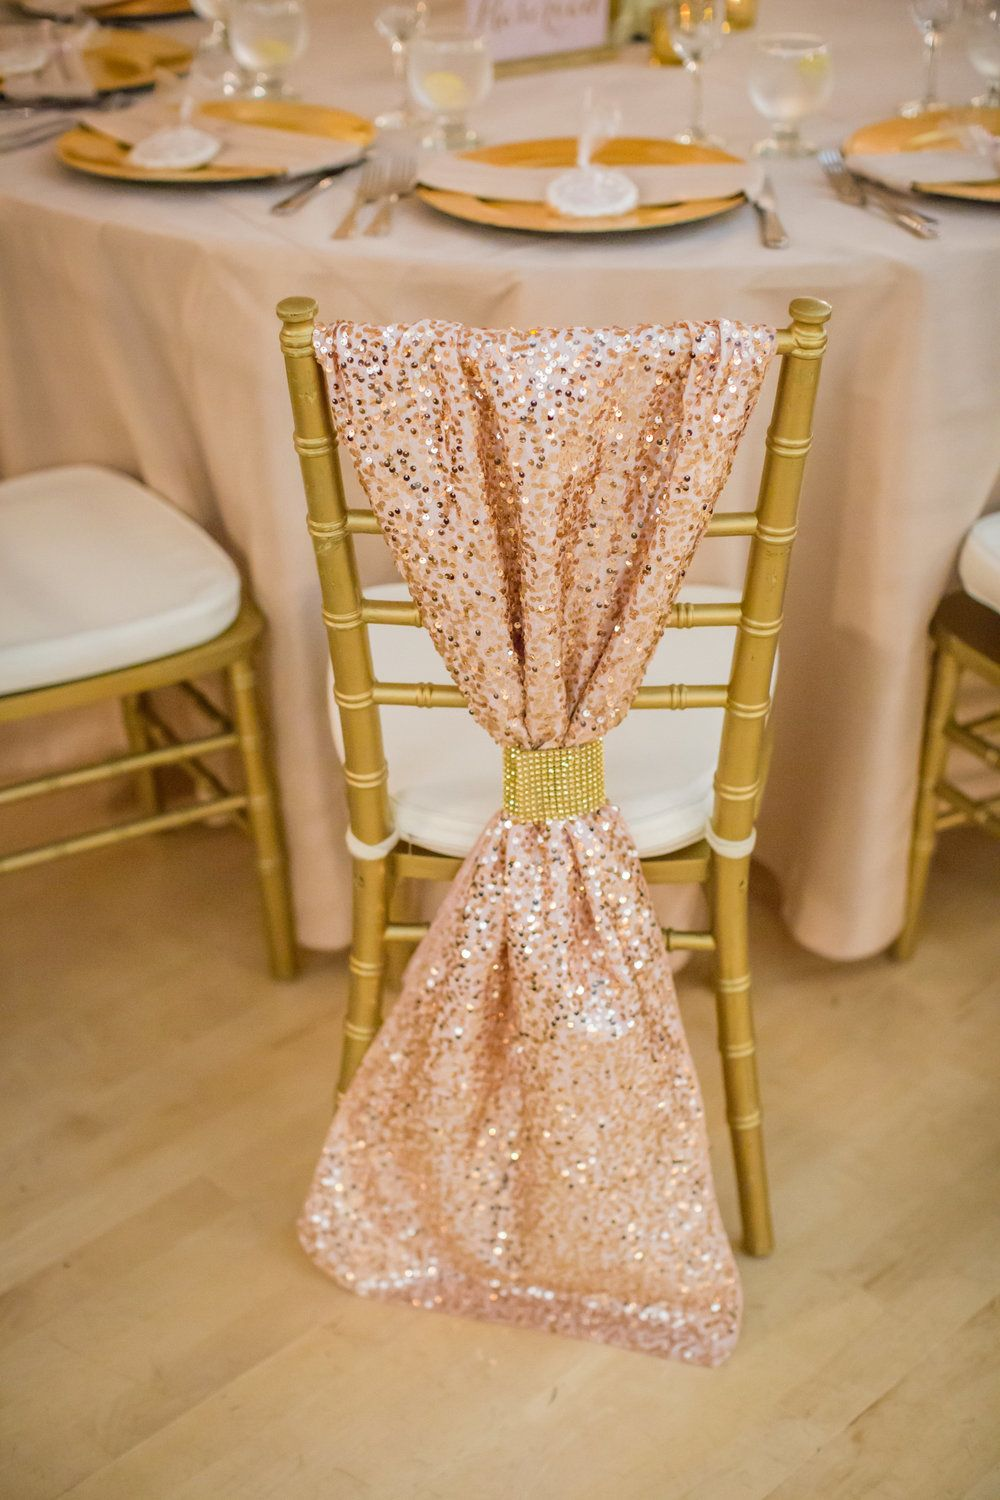 Decor for chairs wedding Featured Wedding  A Chico Event Center Wedding by Katelyn Owens